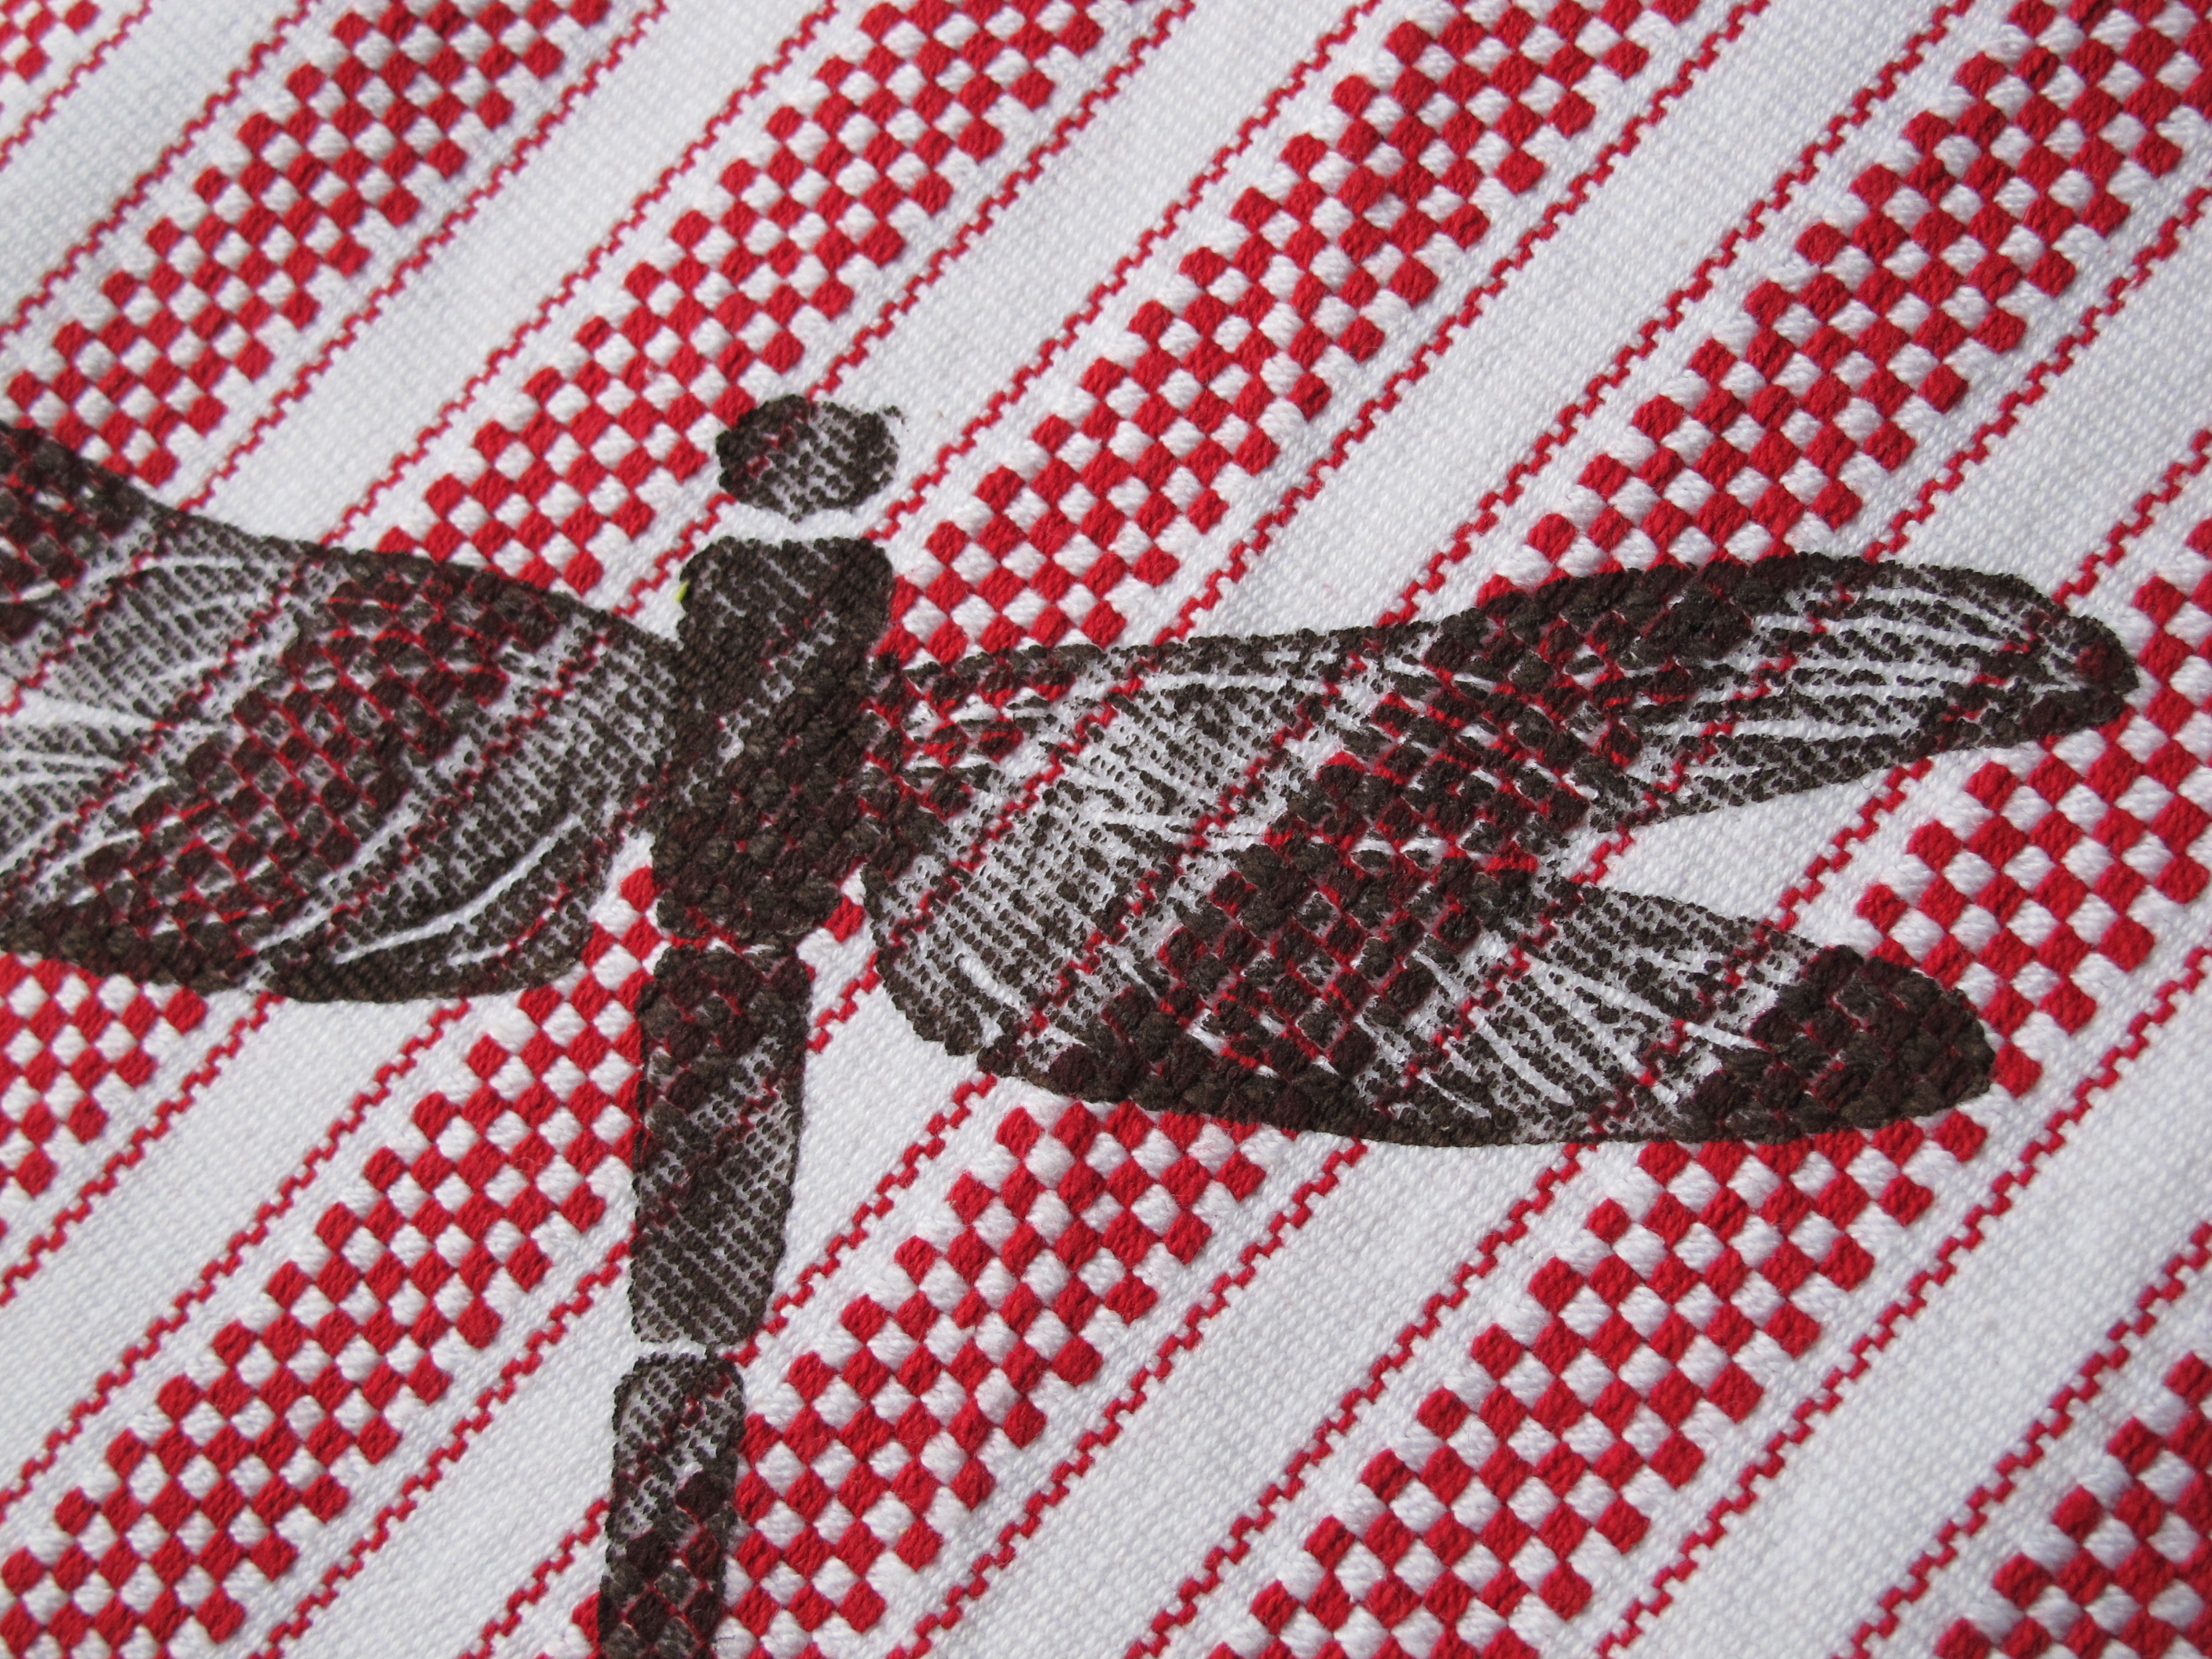 dragonfly detail